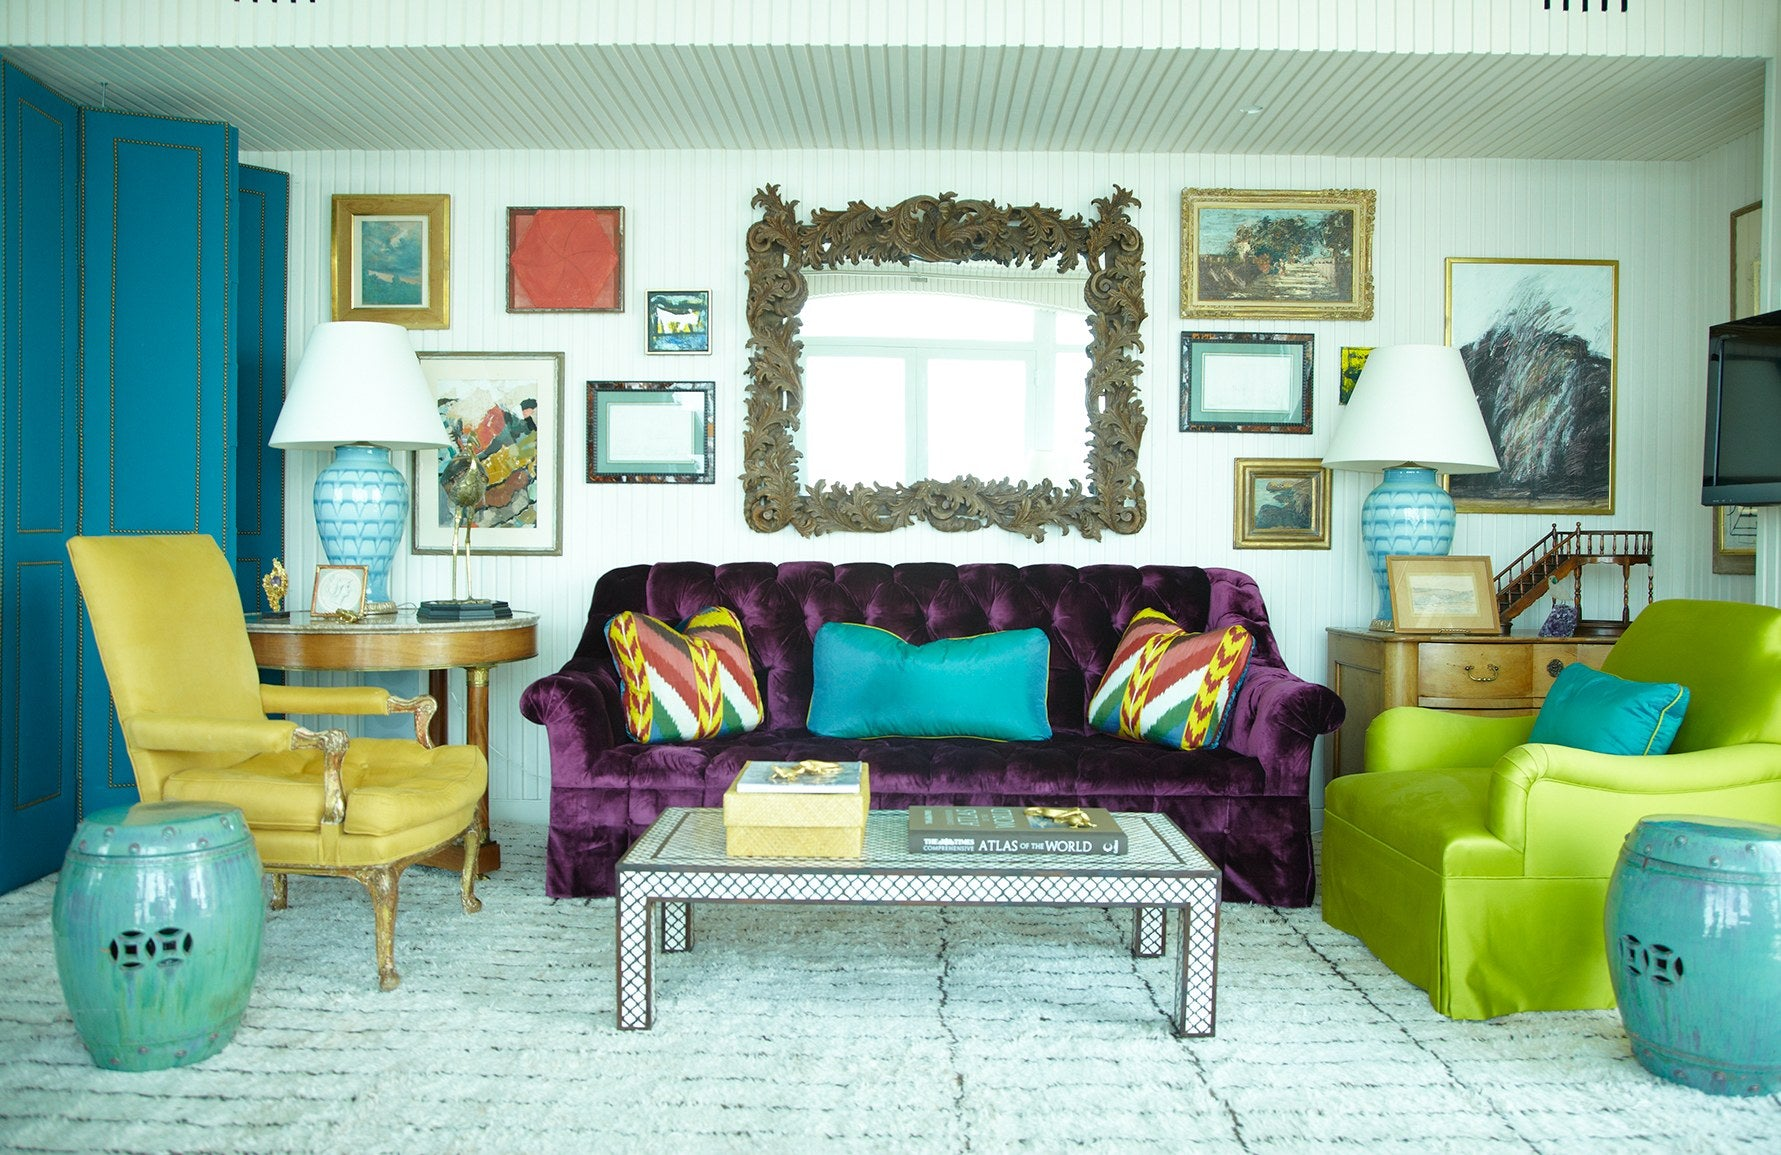 Top 10 American Interior Designers You Need To Know - Miles Redd - LuxDeco Style Guide